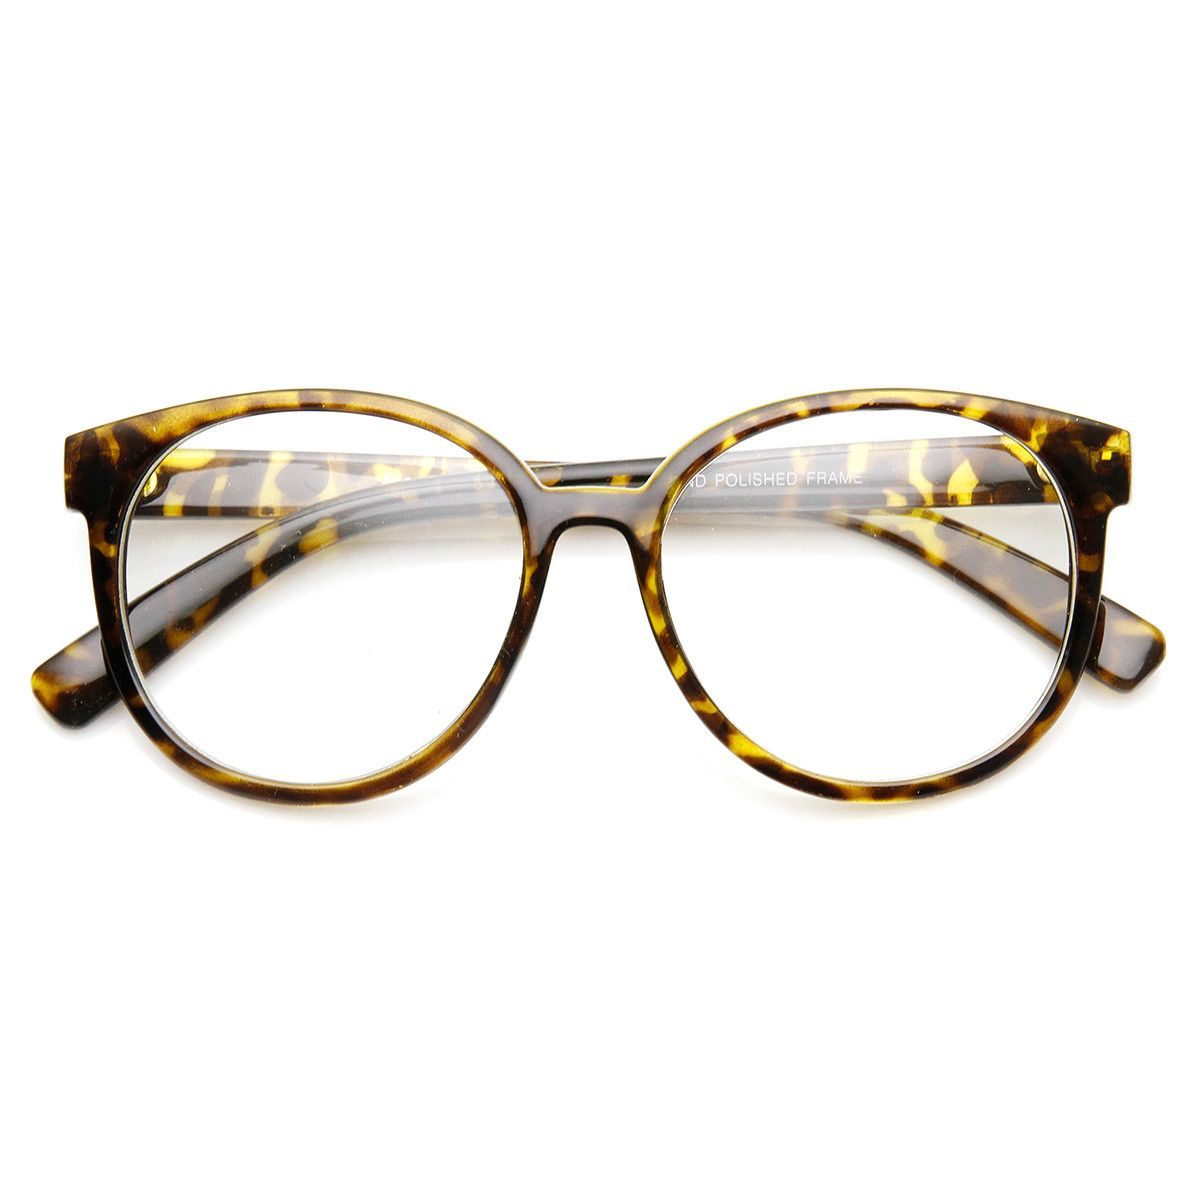 Retro Fashion Oversized P3 1980s Style Frame Clear Lens Glasses